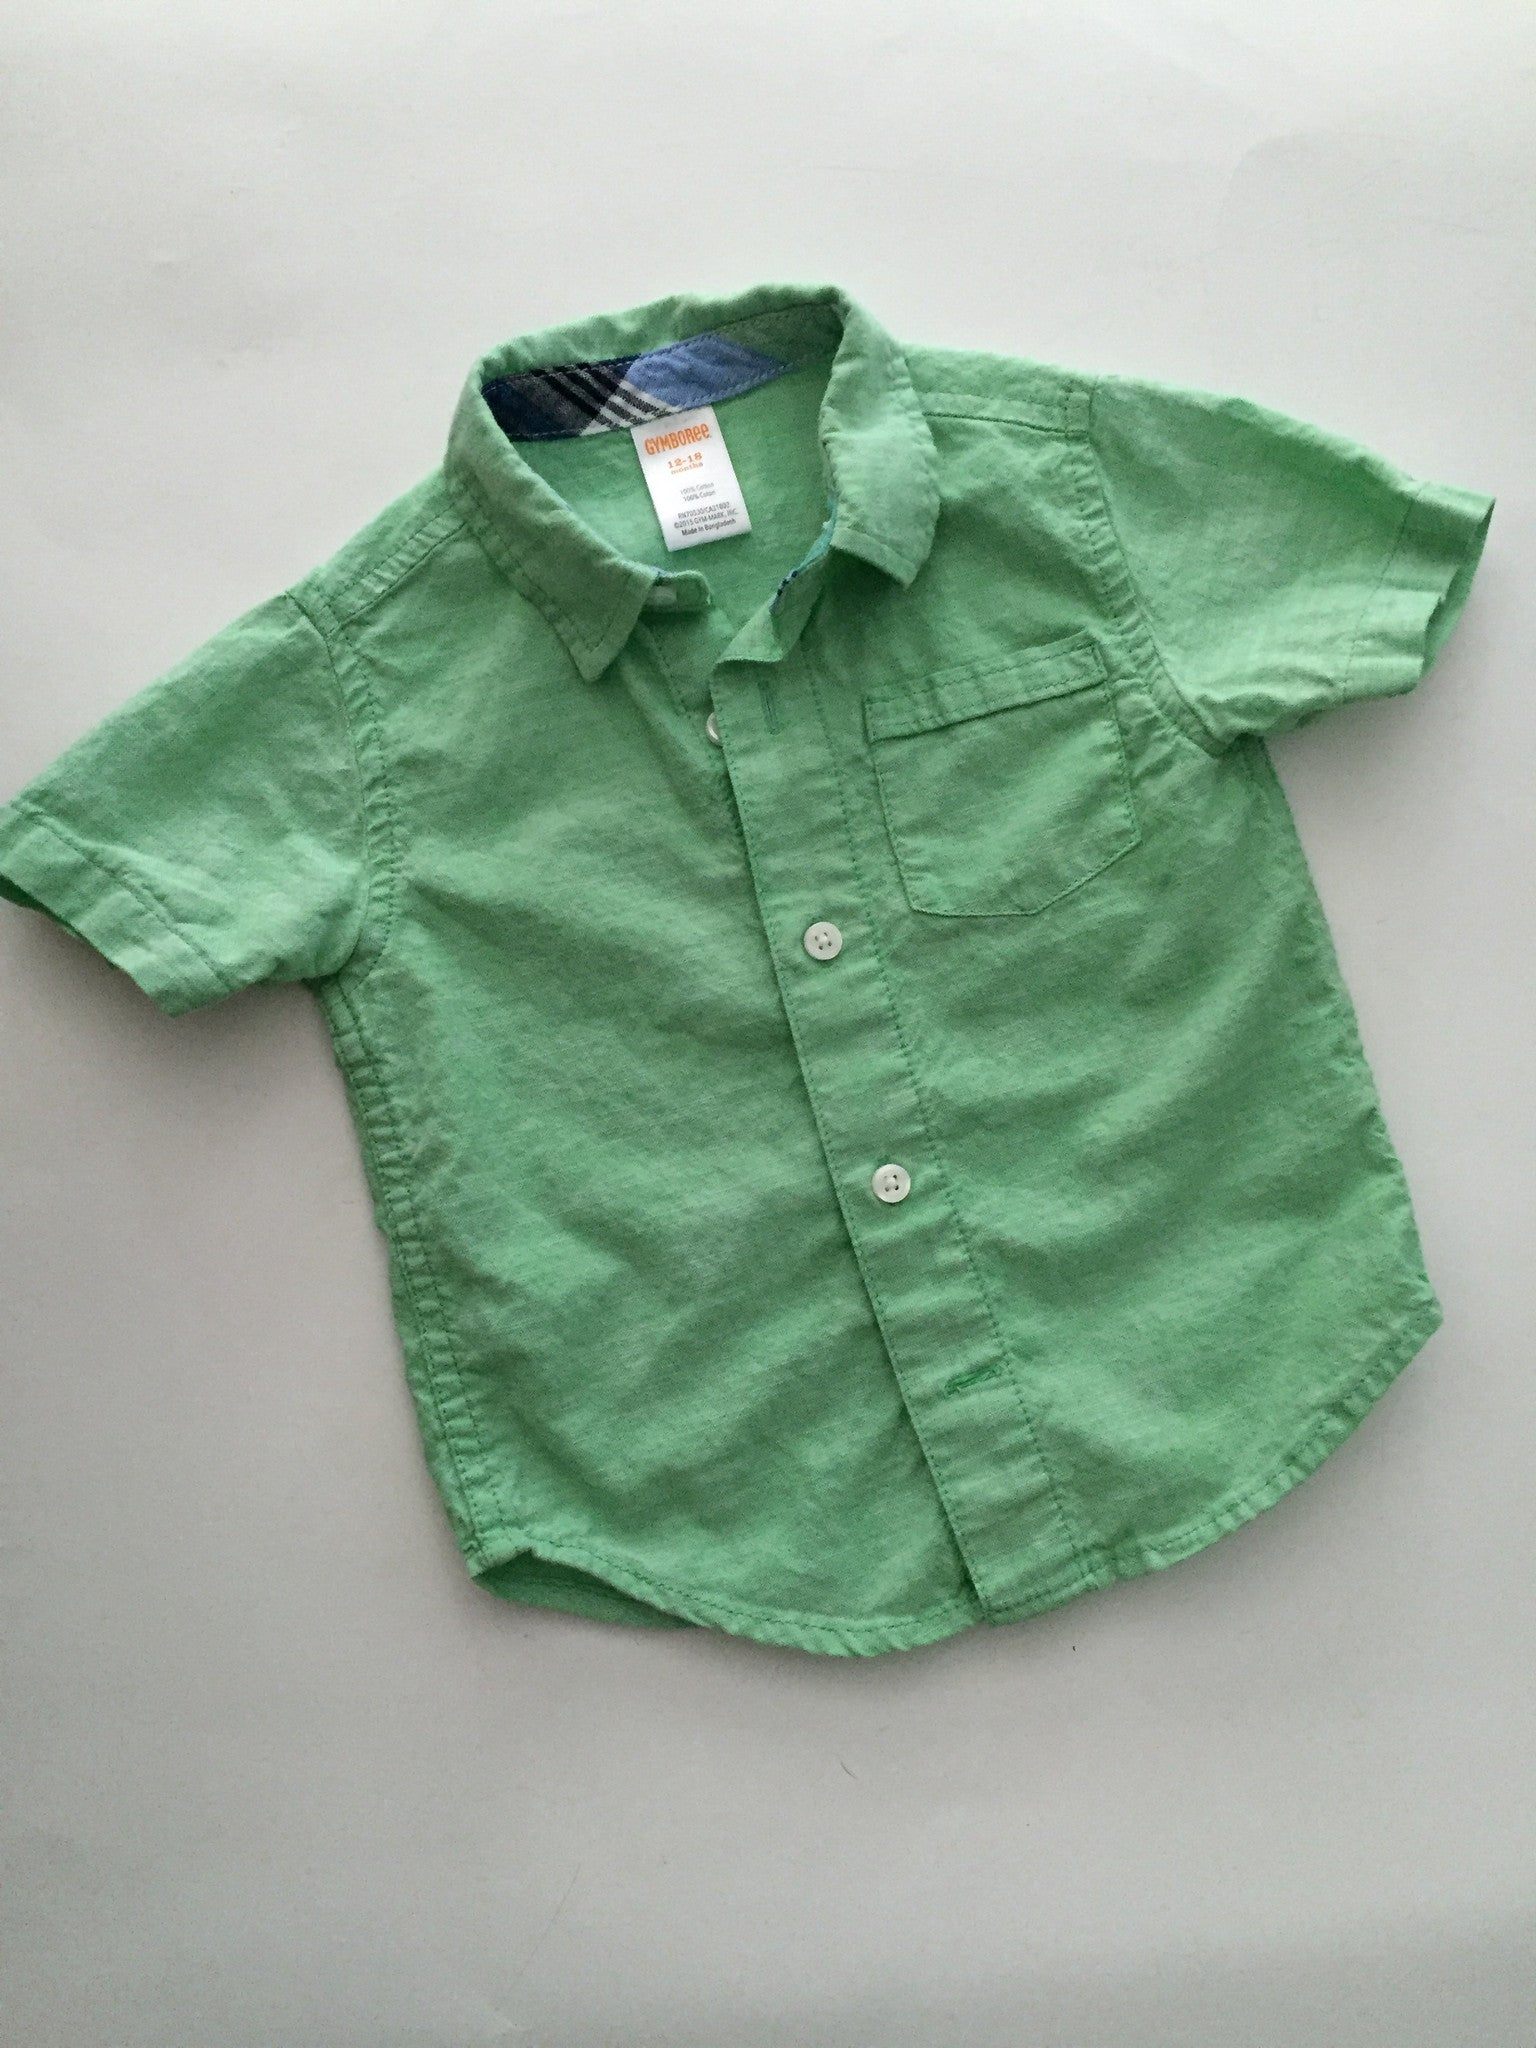 Gymboree Green Button Up Shirt | 12-18M